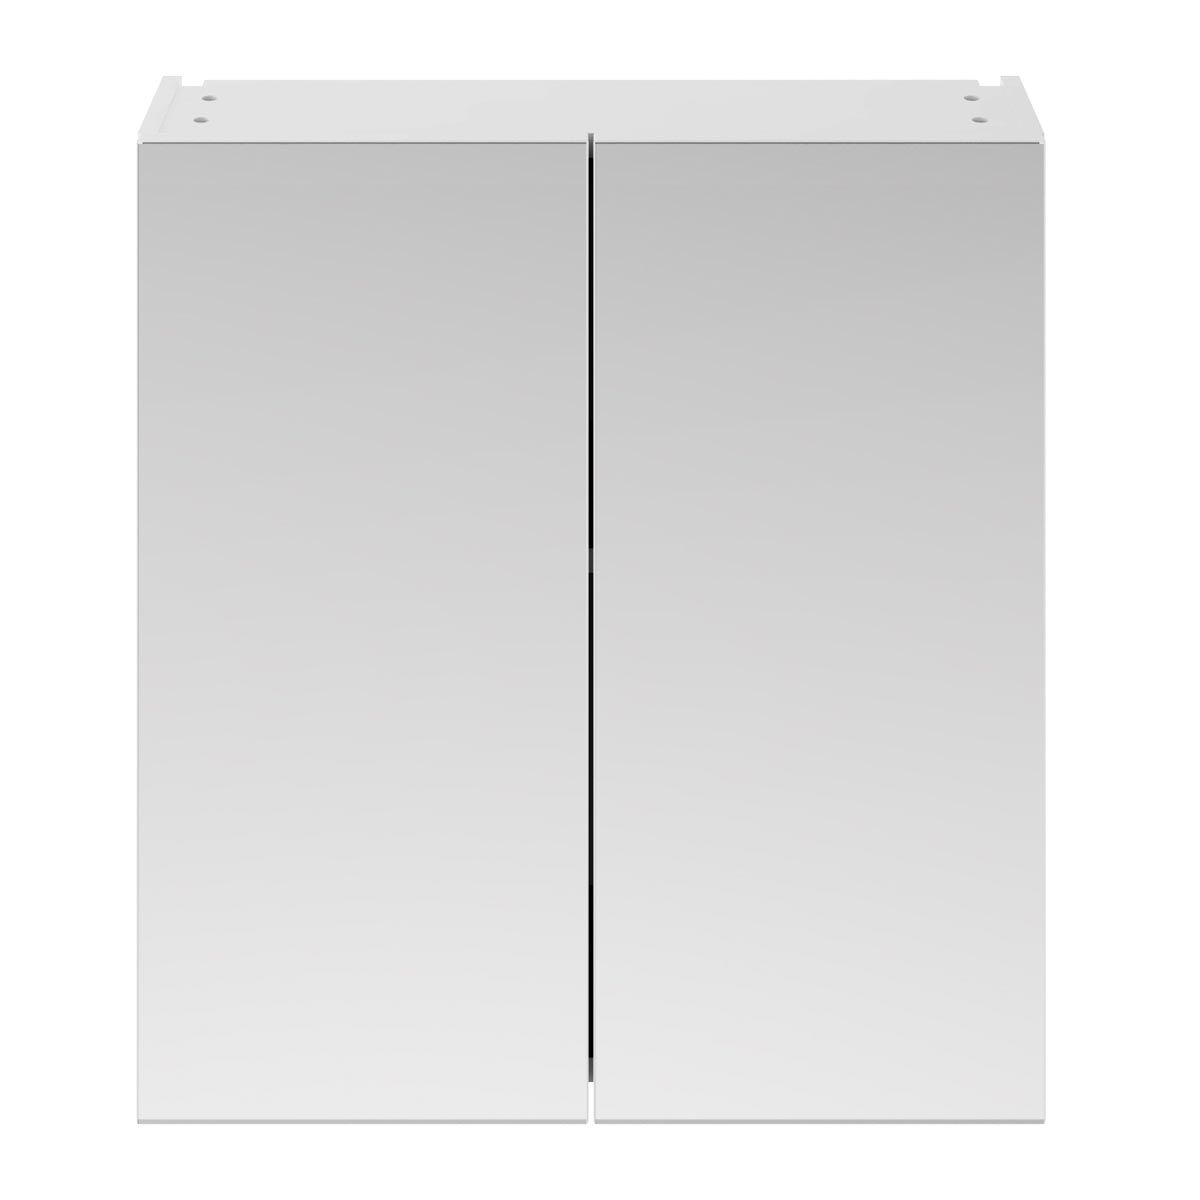 Nuie Athena Gloss White Double Mirrored Bathroom Cabinet 800mm